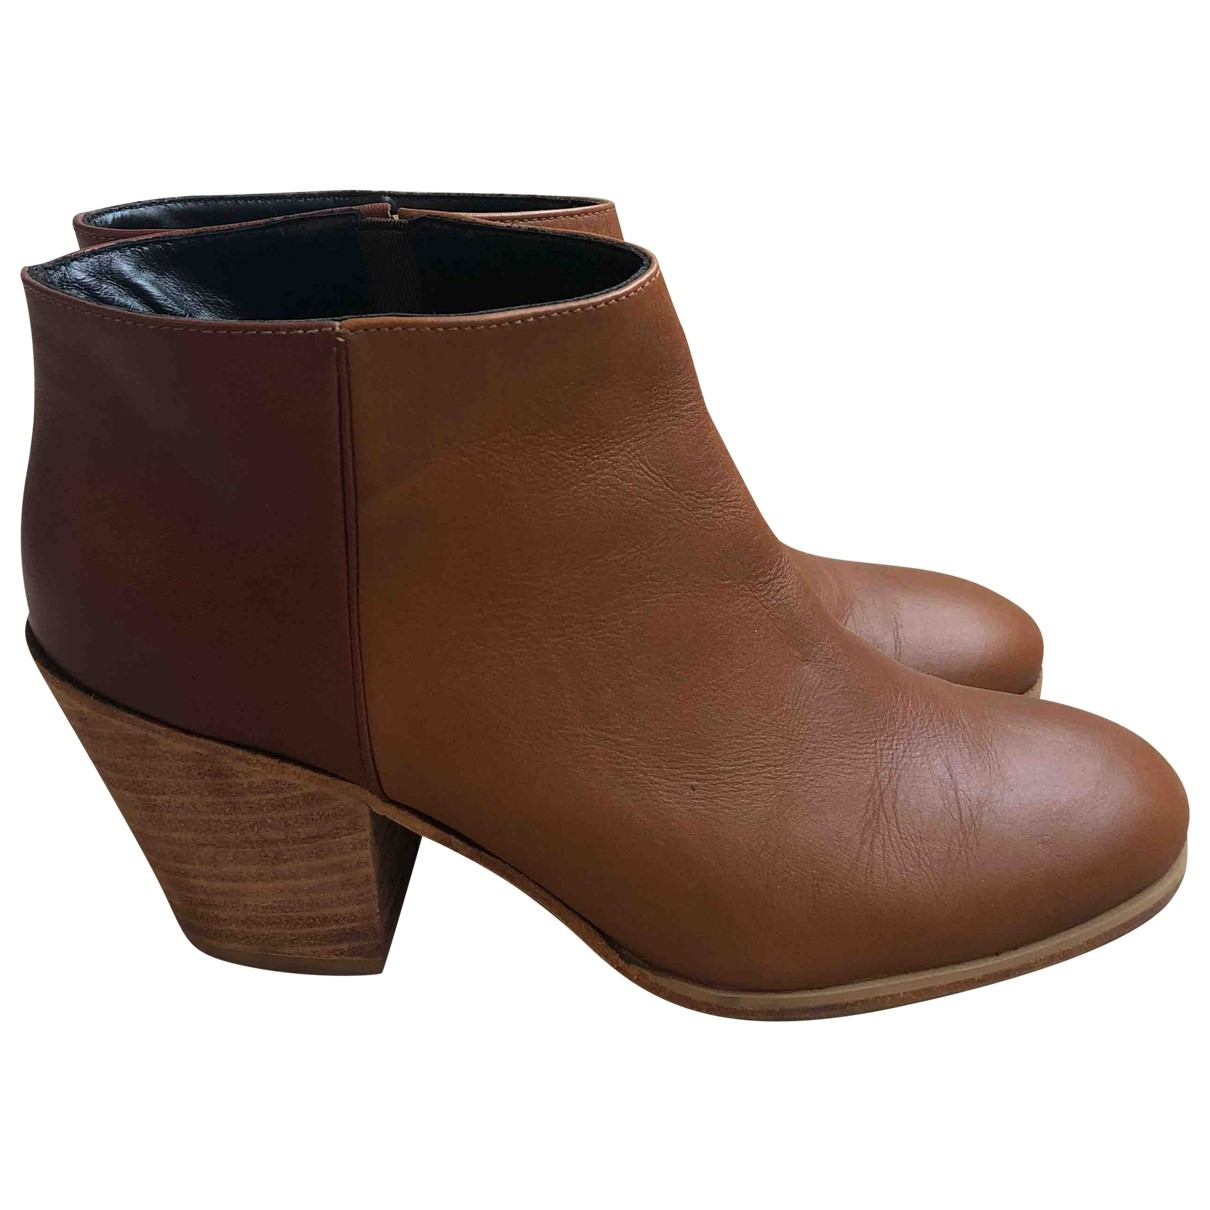 Rachel Comey \N Camel Leather Boots for Women 8 US